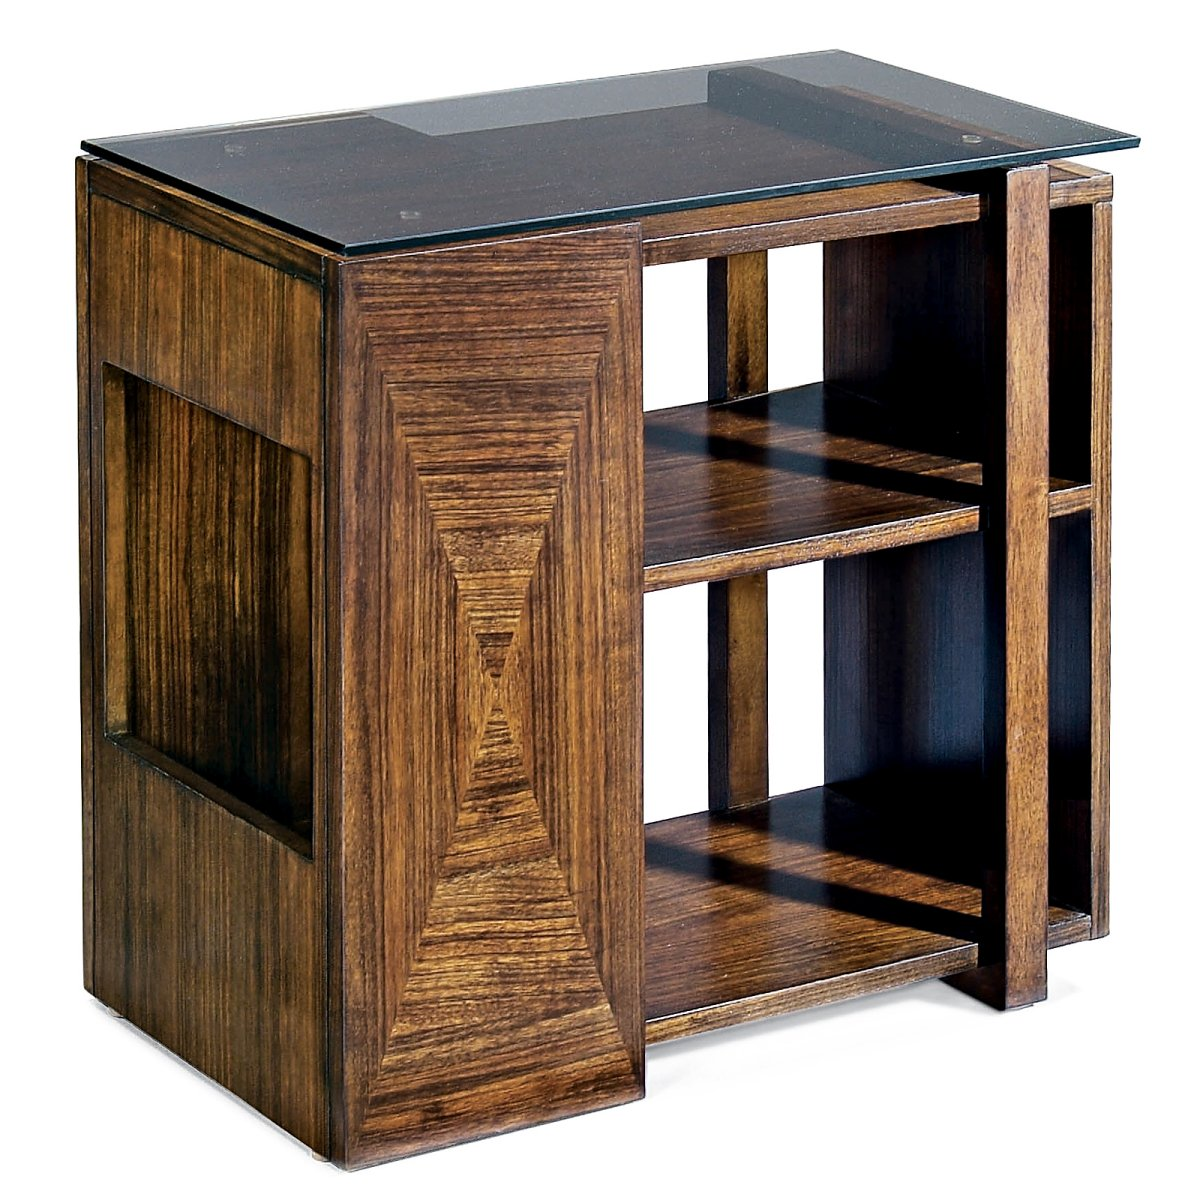 Beautify Your Home With Aesthetic Narrow Coffee Table: Bernhardt Stewart Chair Side Table